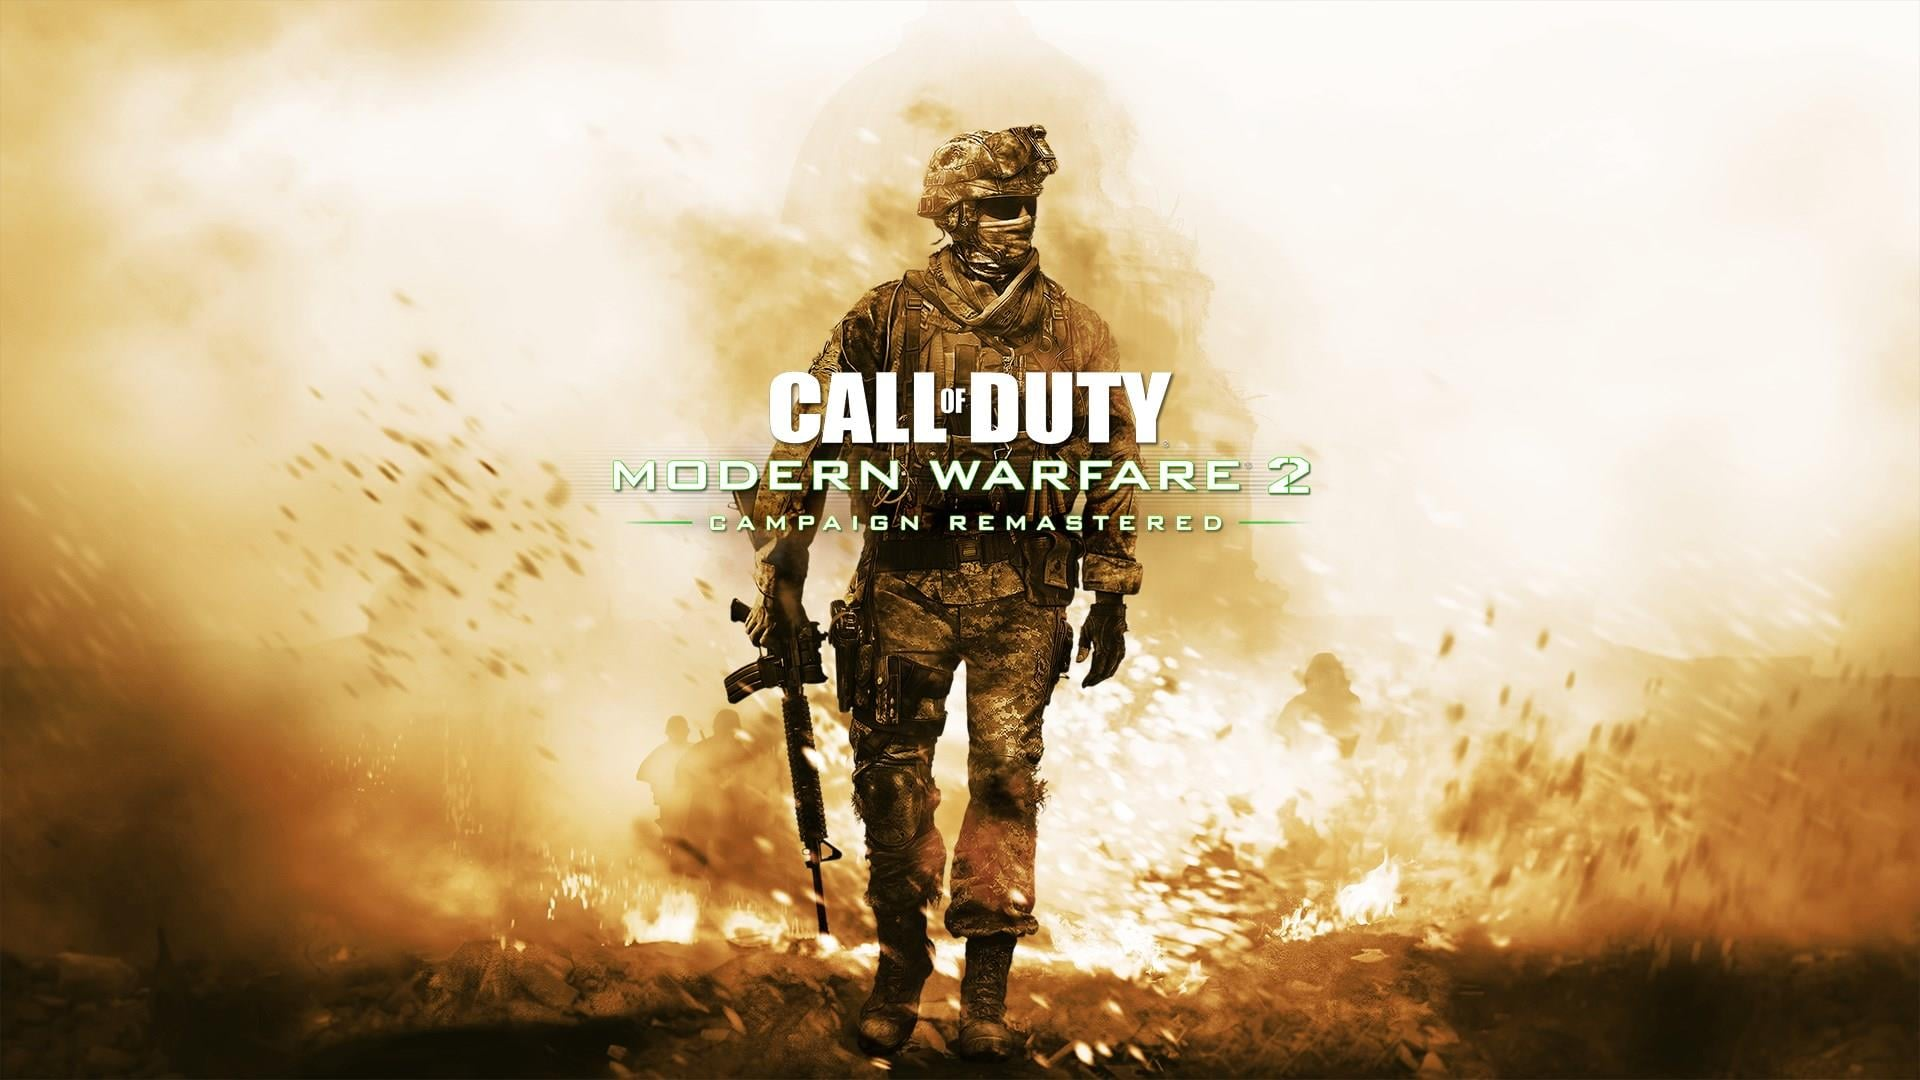 Call of Duty: Modern Warfare 2 Campaign Remastered ~ TitledHeroArt